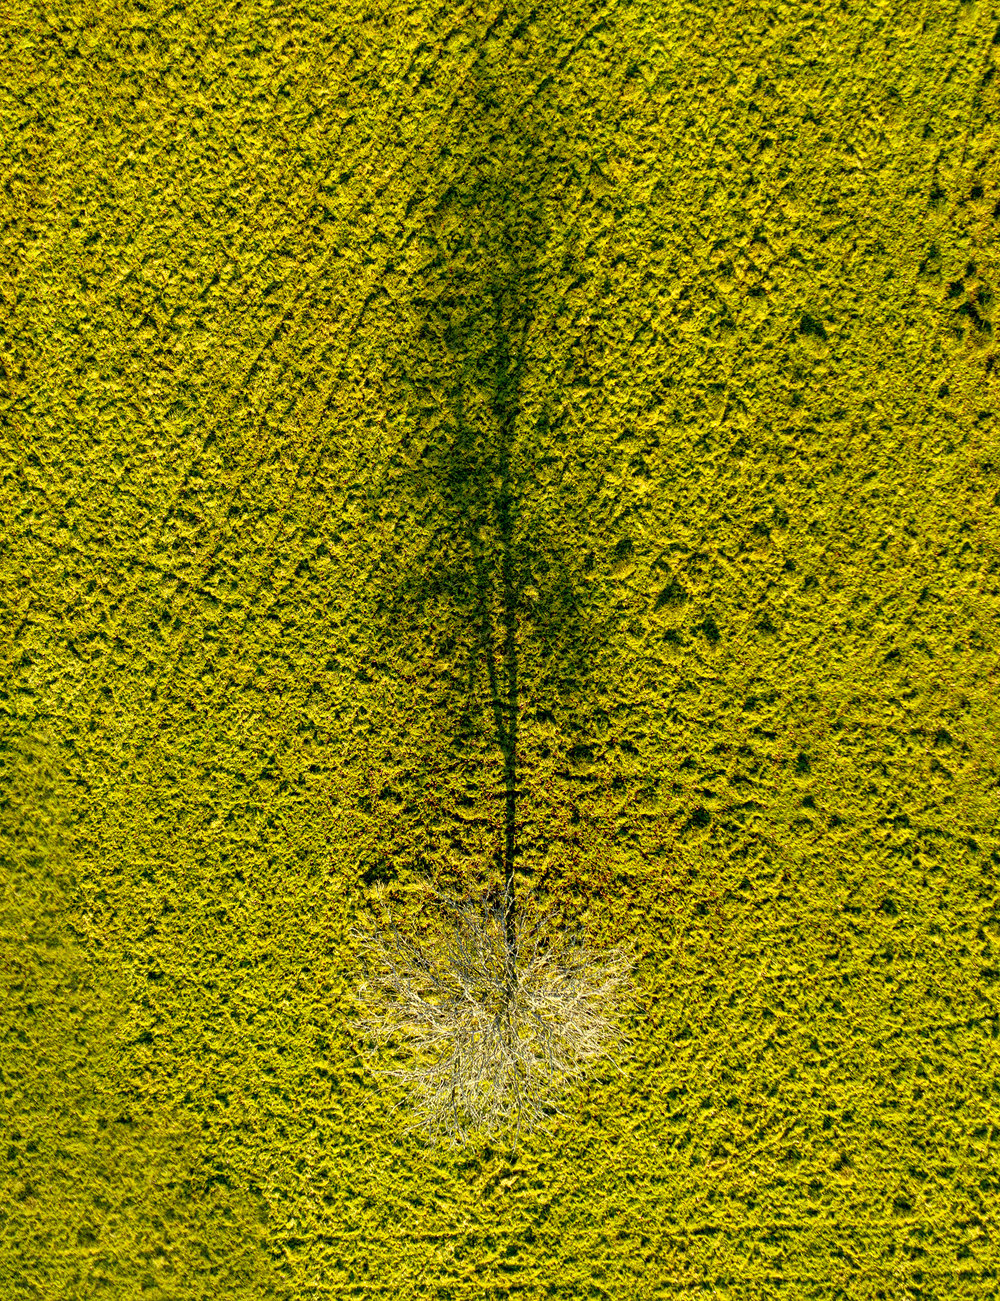 Fromtheair-tree s.jpg